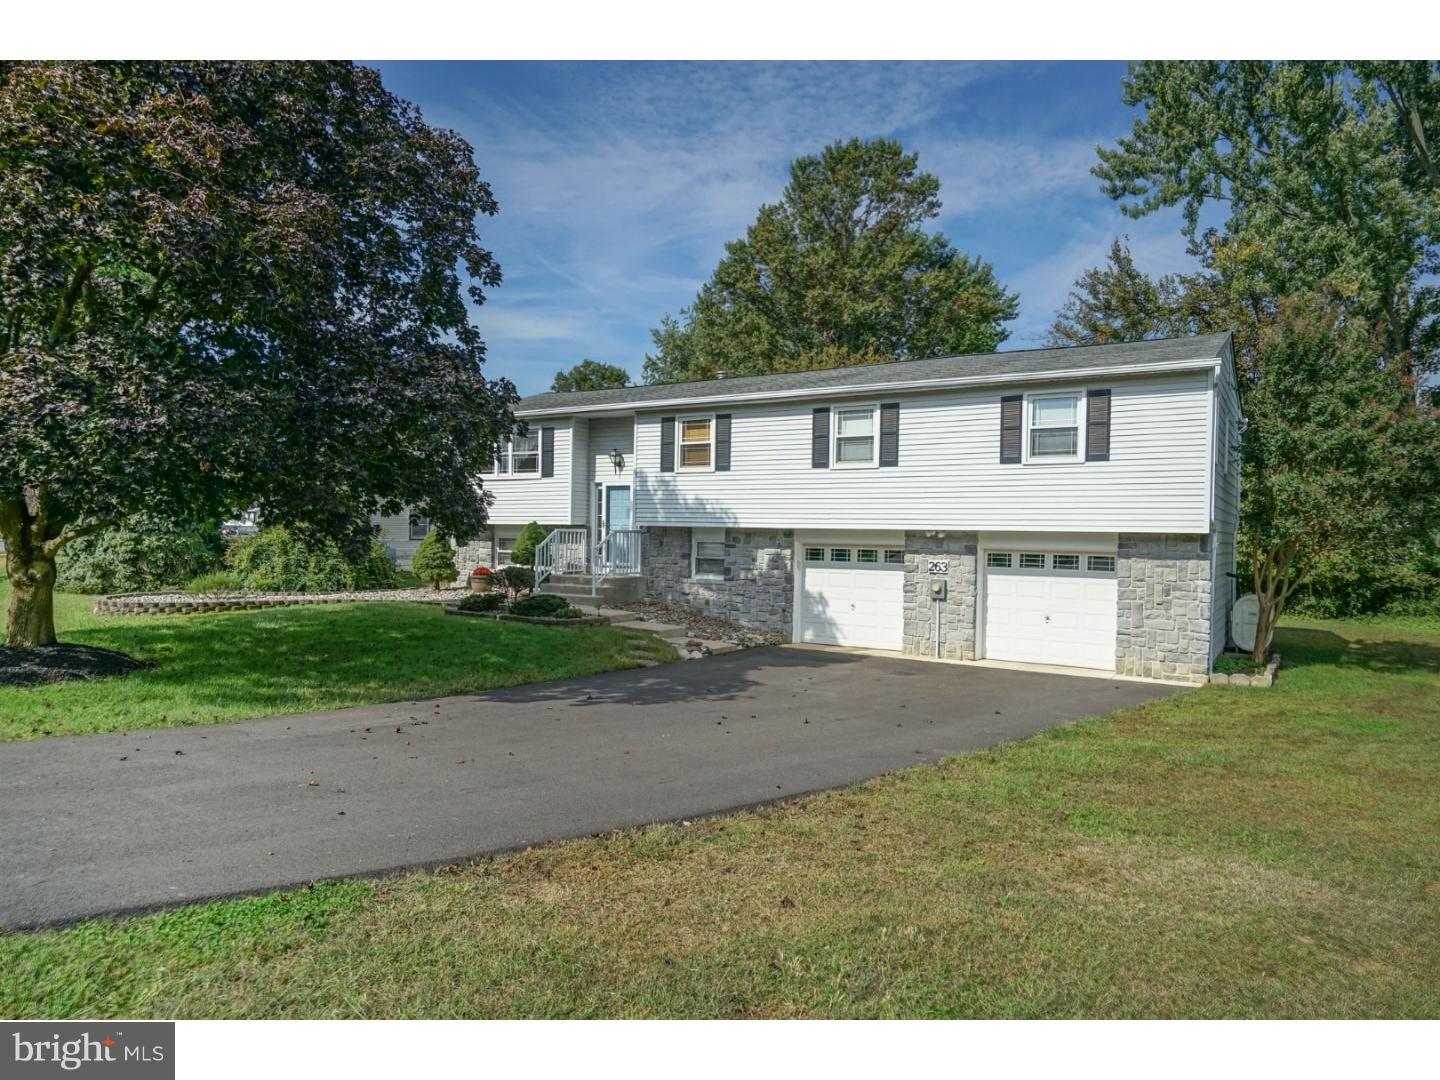 Single Family Home for Sale at 263 DOGWOOD Lane Clarksboro, New Jersey 08020 United States